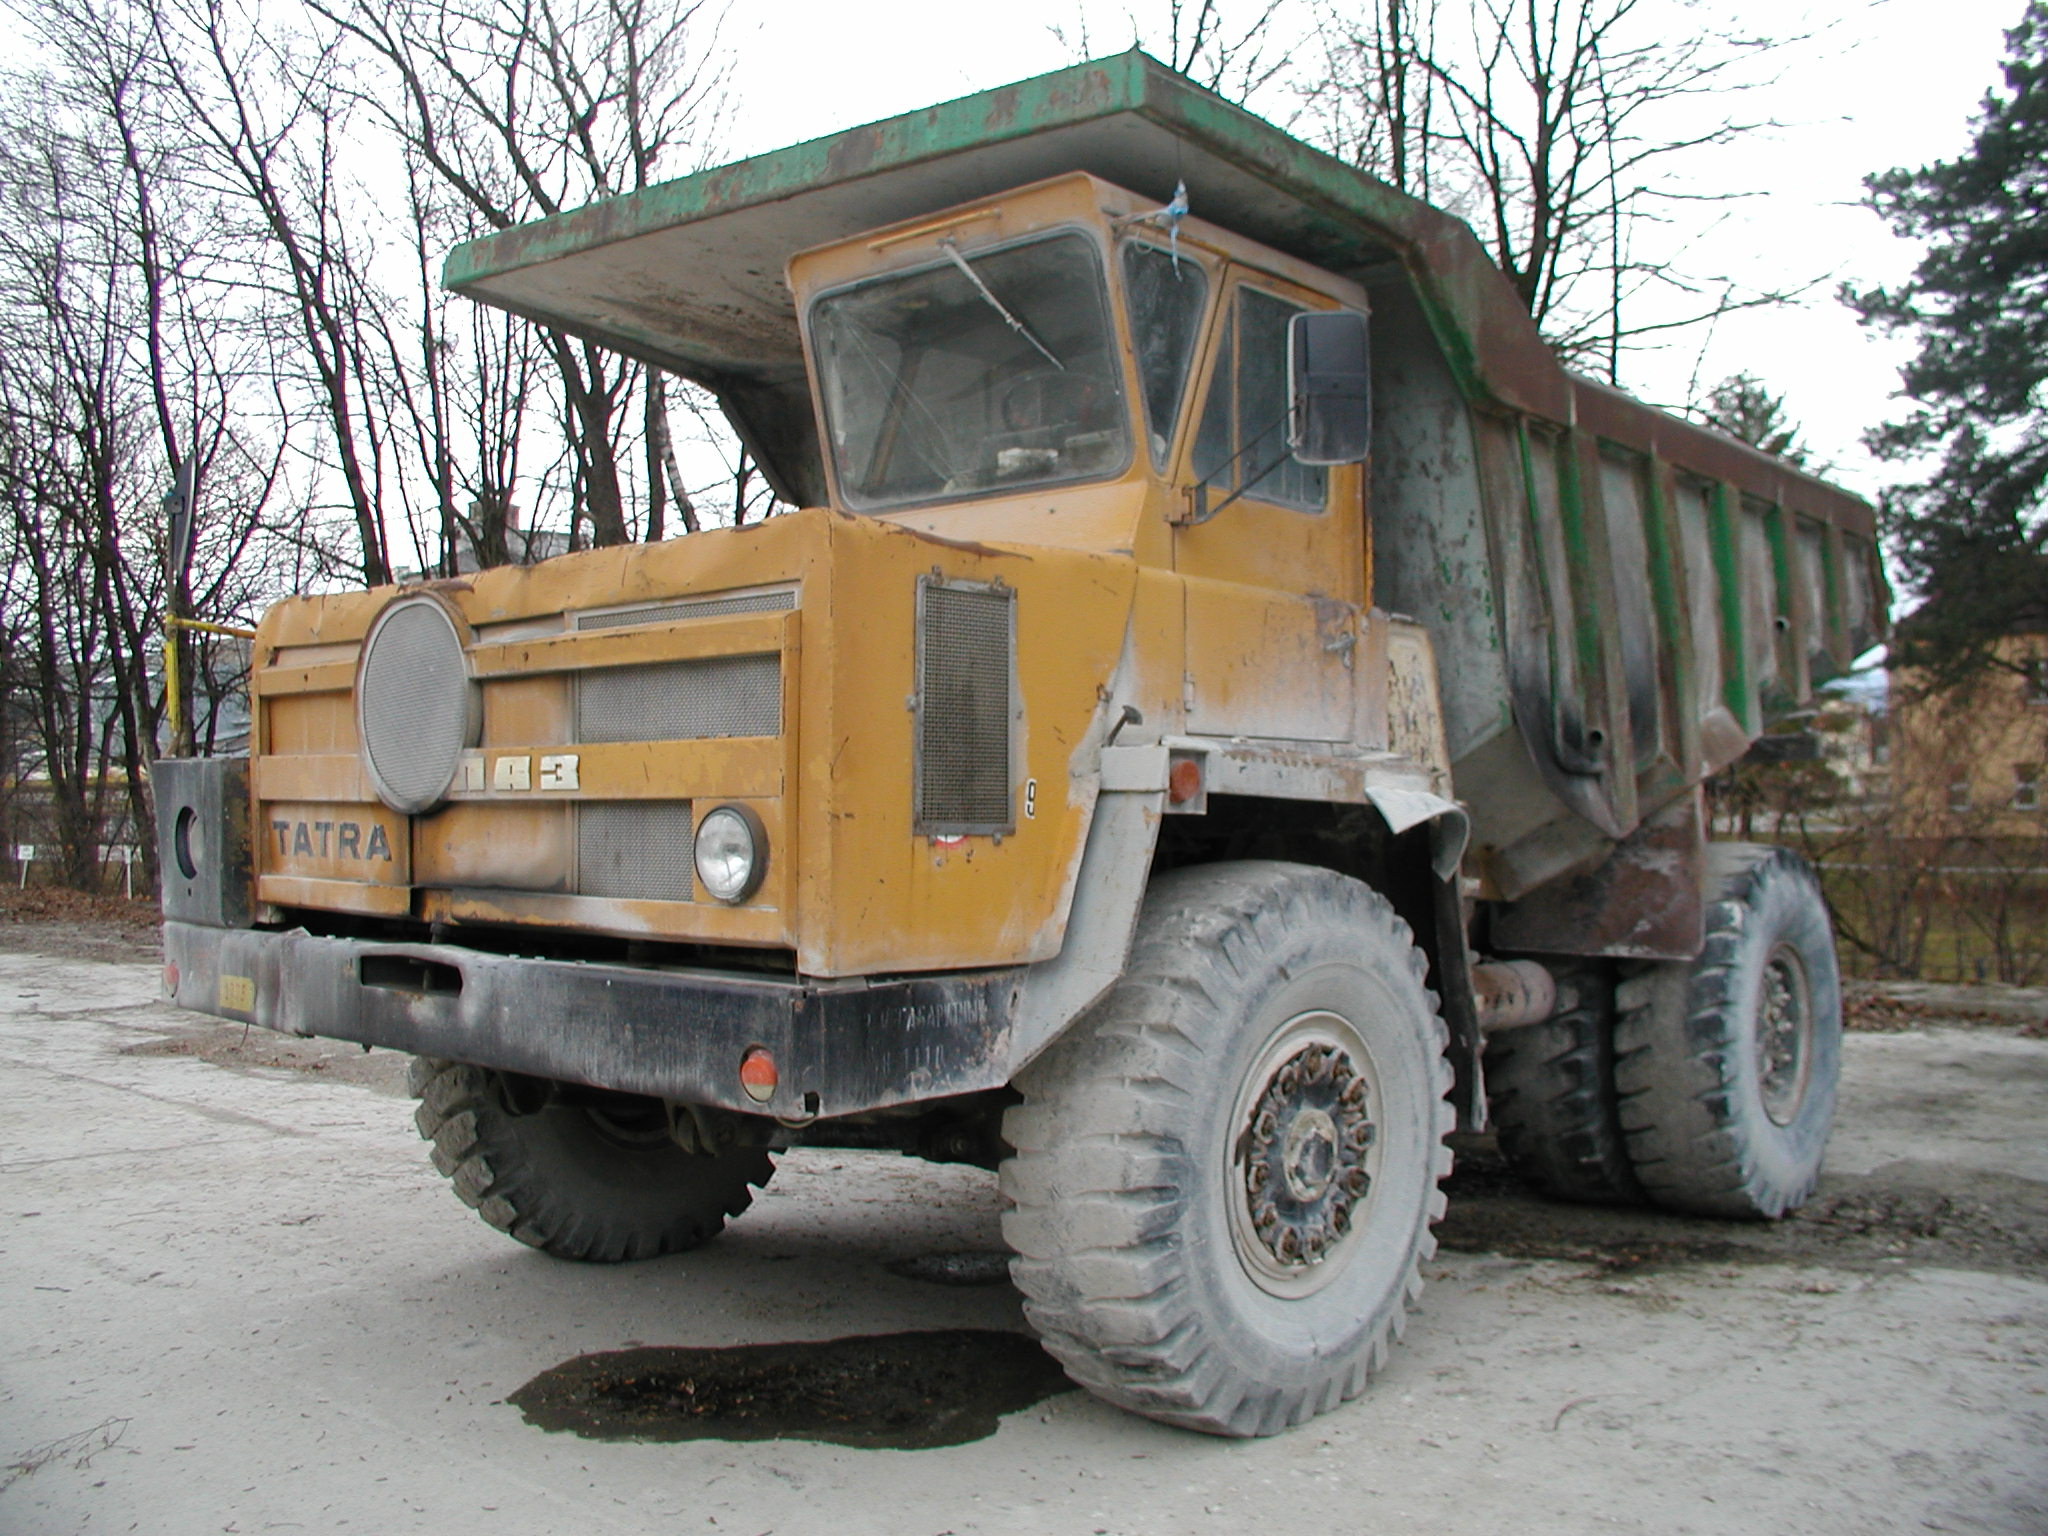 30t dumper belaz engine tatra problem czechmat cz image at maximum resolution